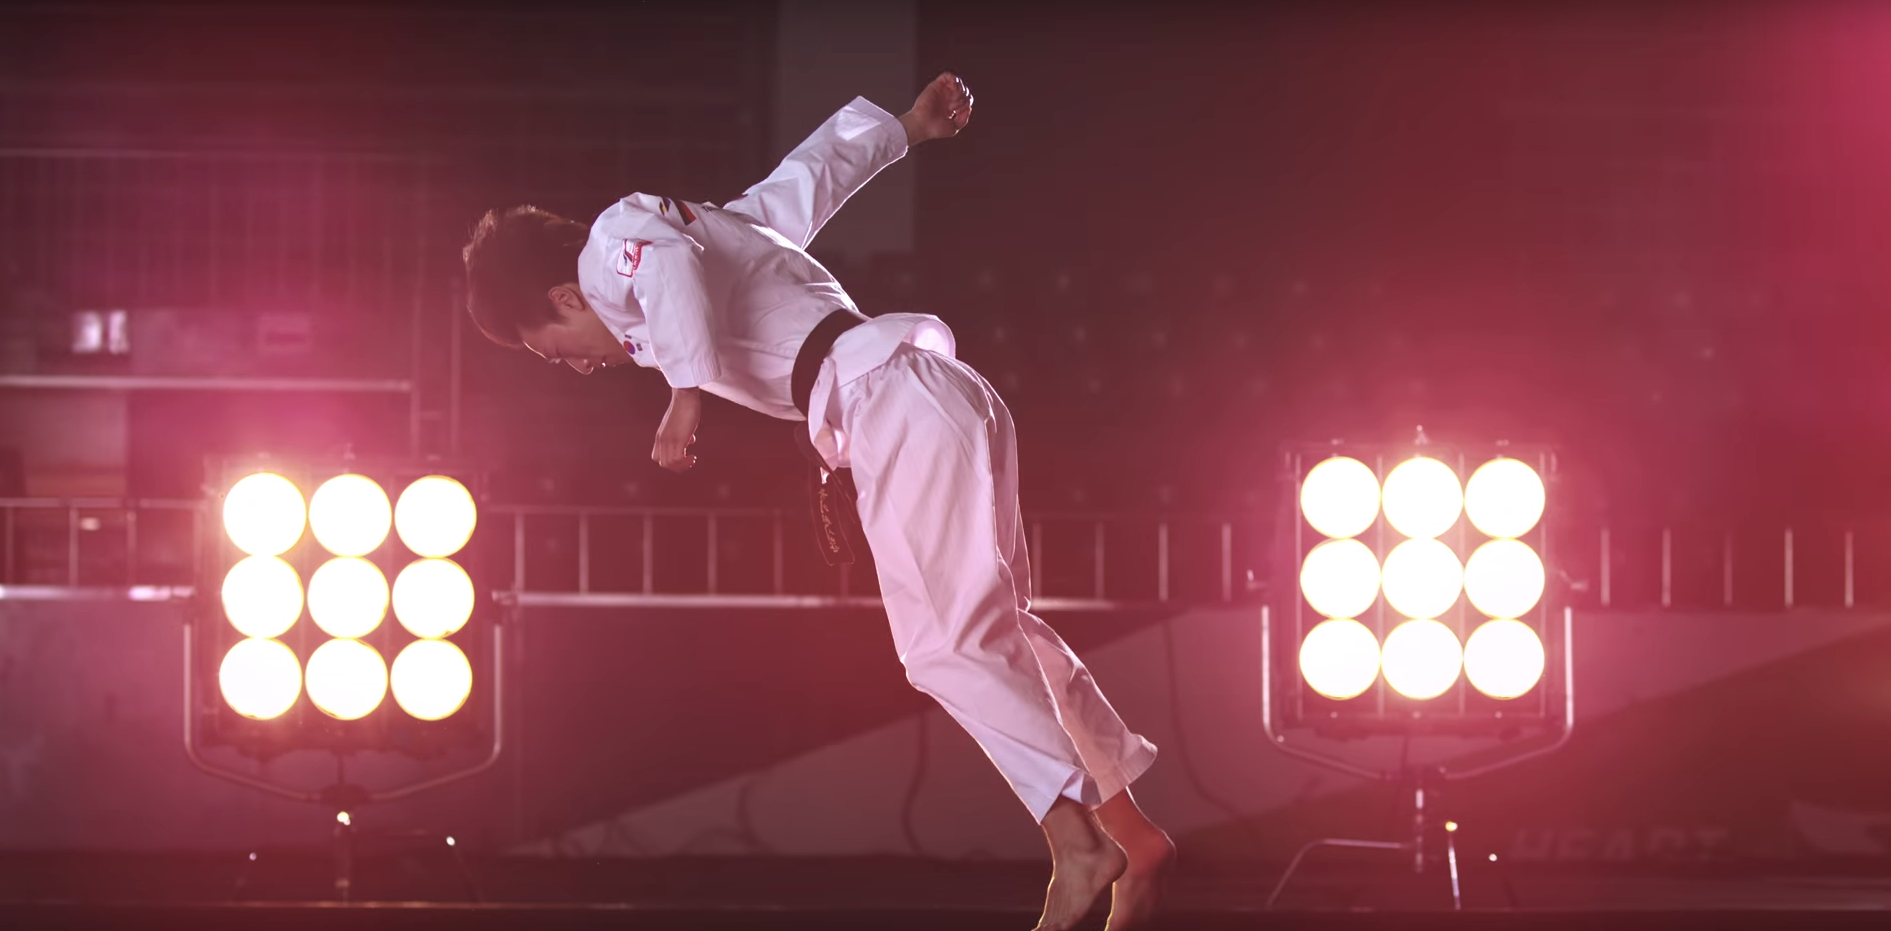 Watch These Insane Taekwondo Stunts In Slow-Motion With the Slo-Mo Guys